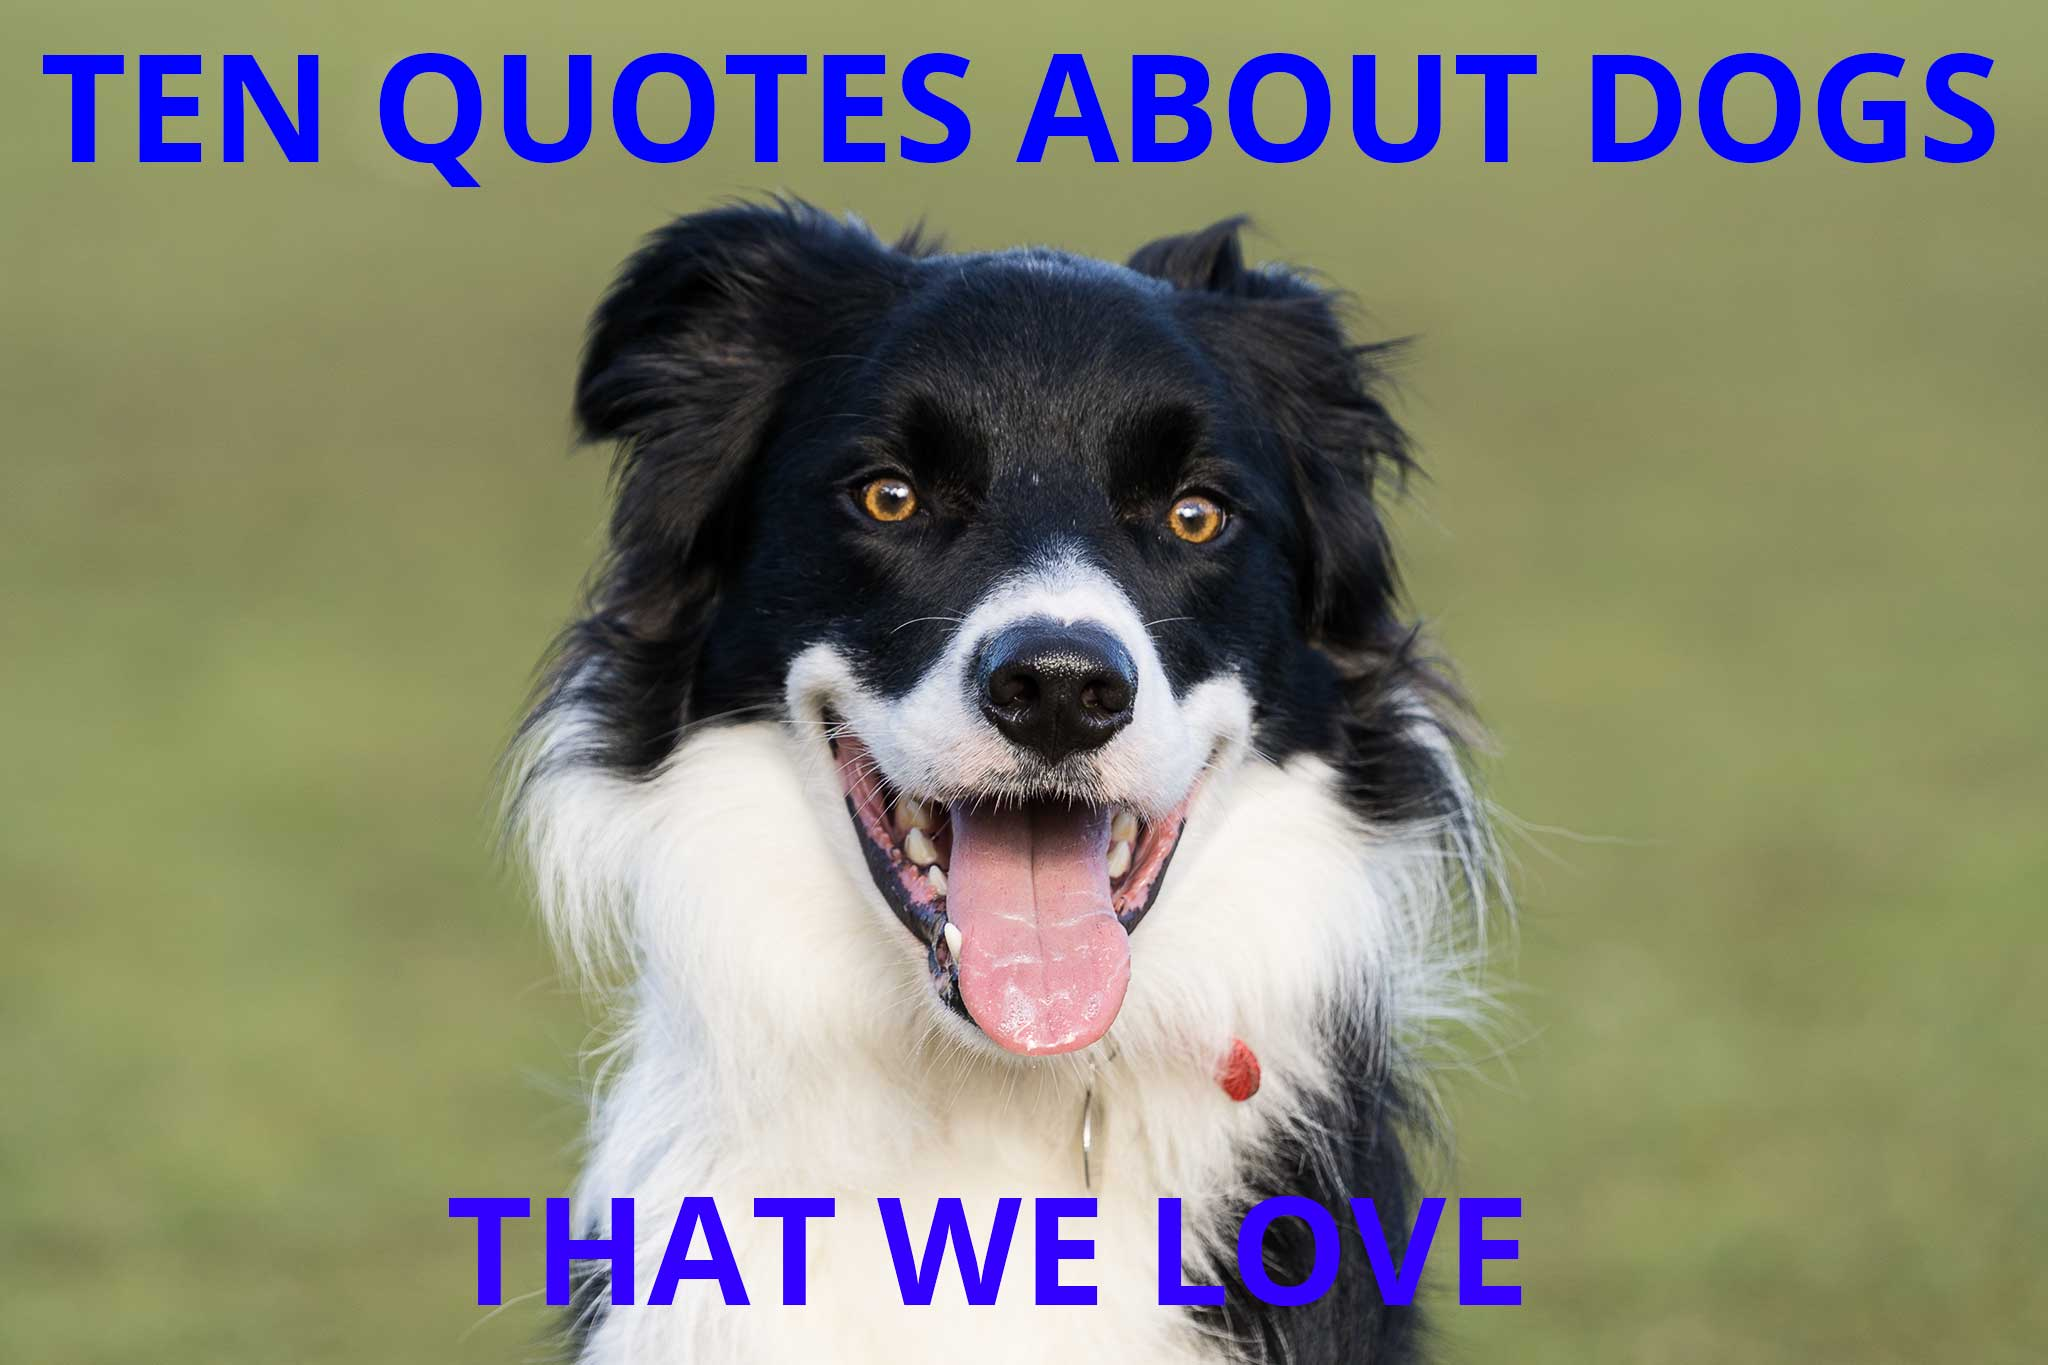 Dog Love Quotes Ten Quotes About Dogs That We Love